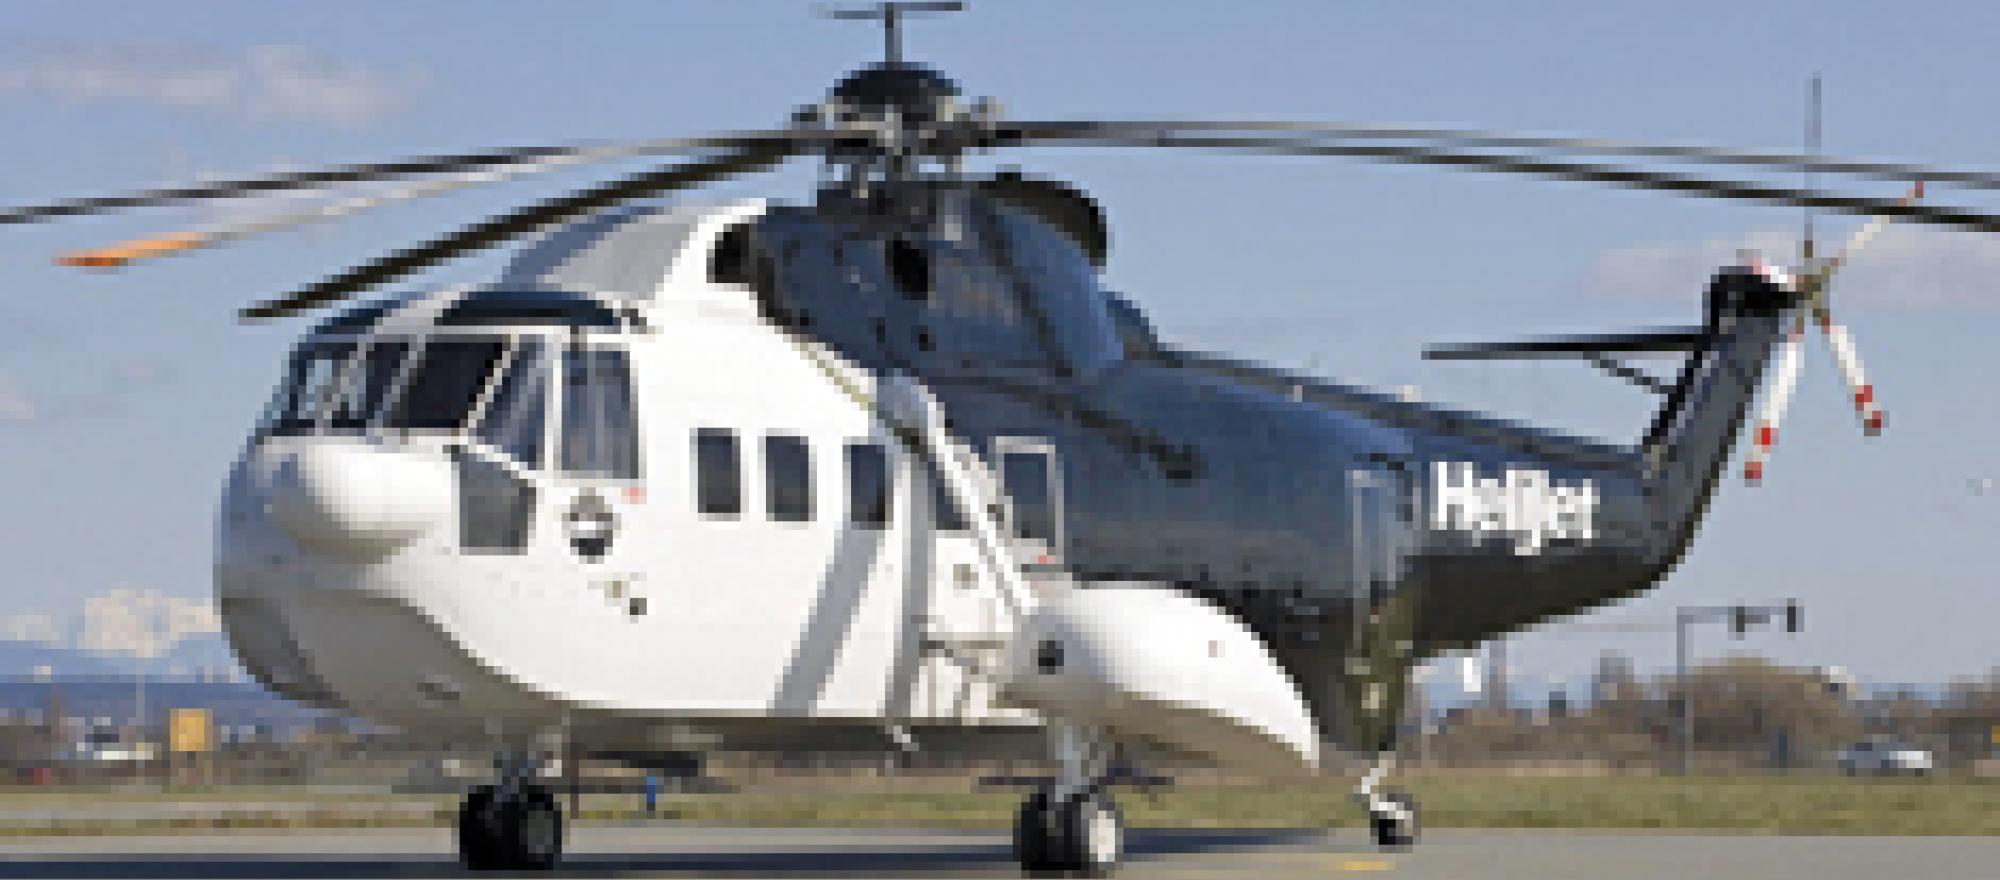 Victoria-based Helijet will offer charter flights from Vancouver to the Olymp